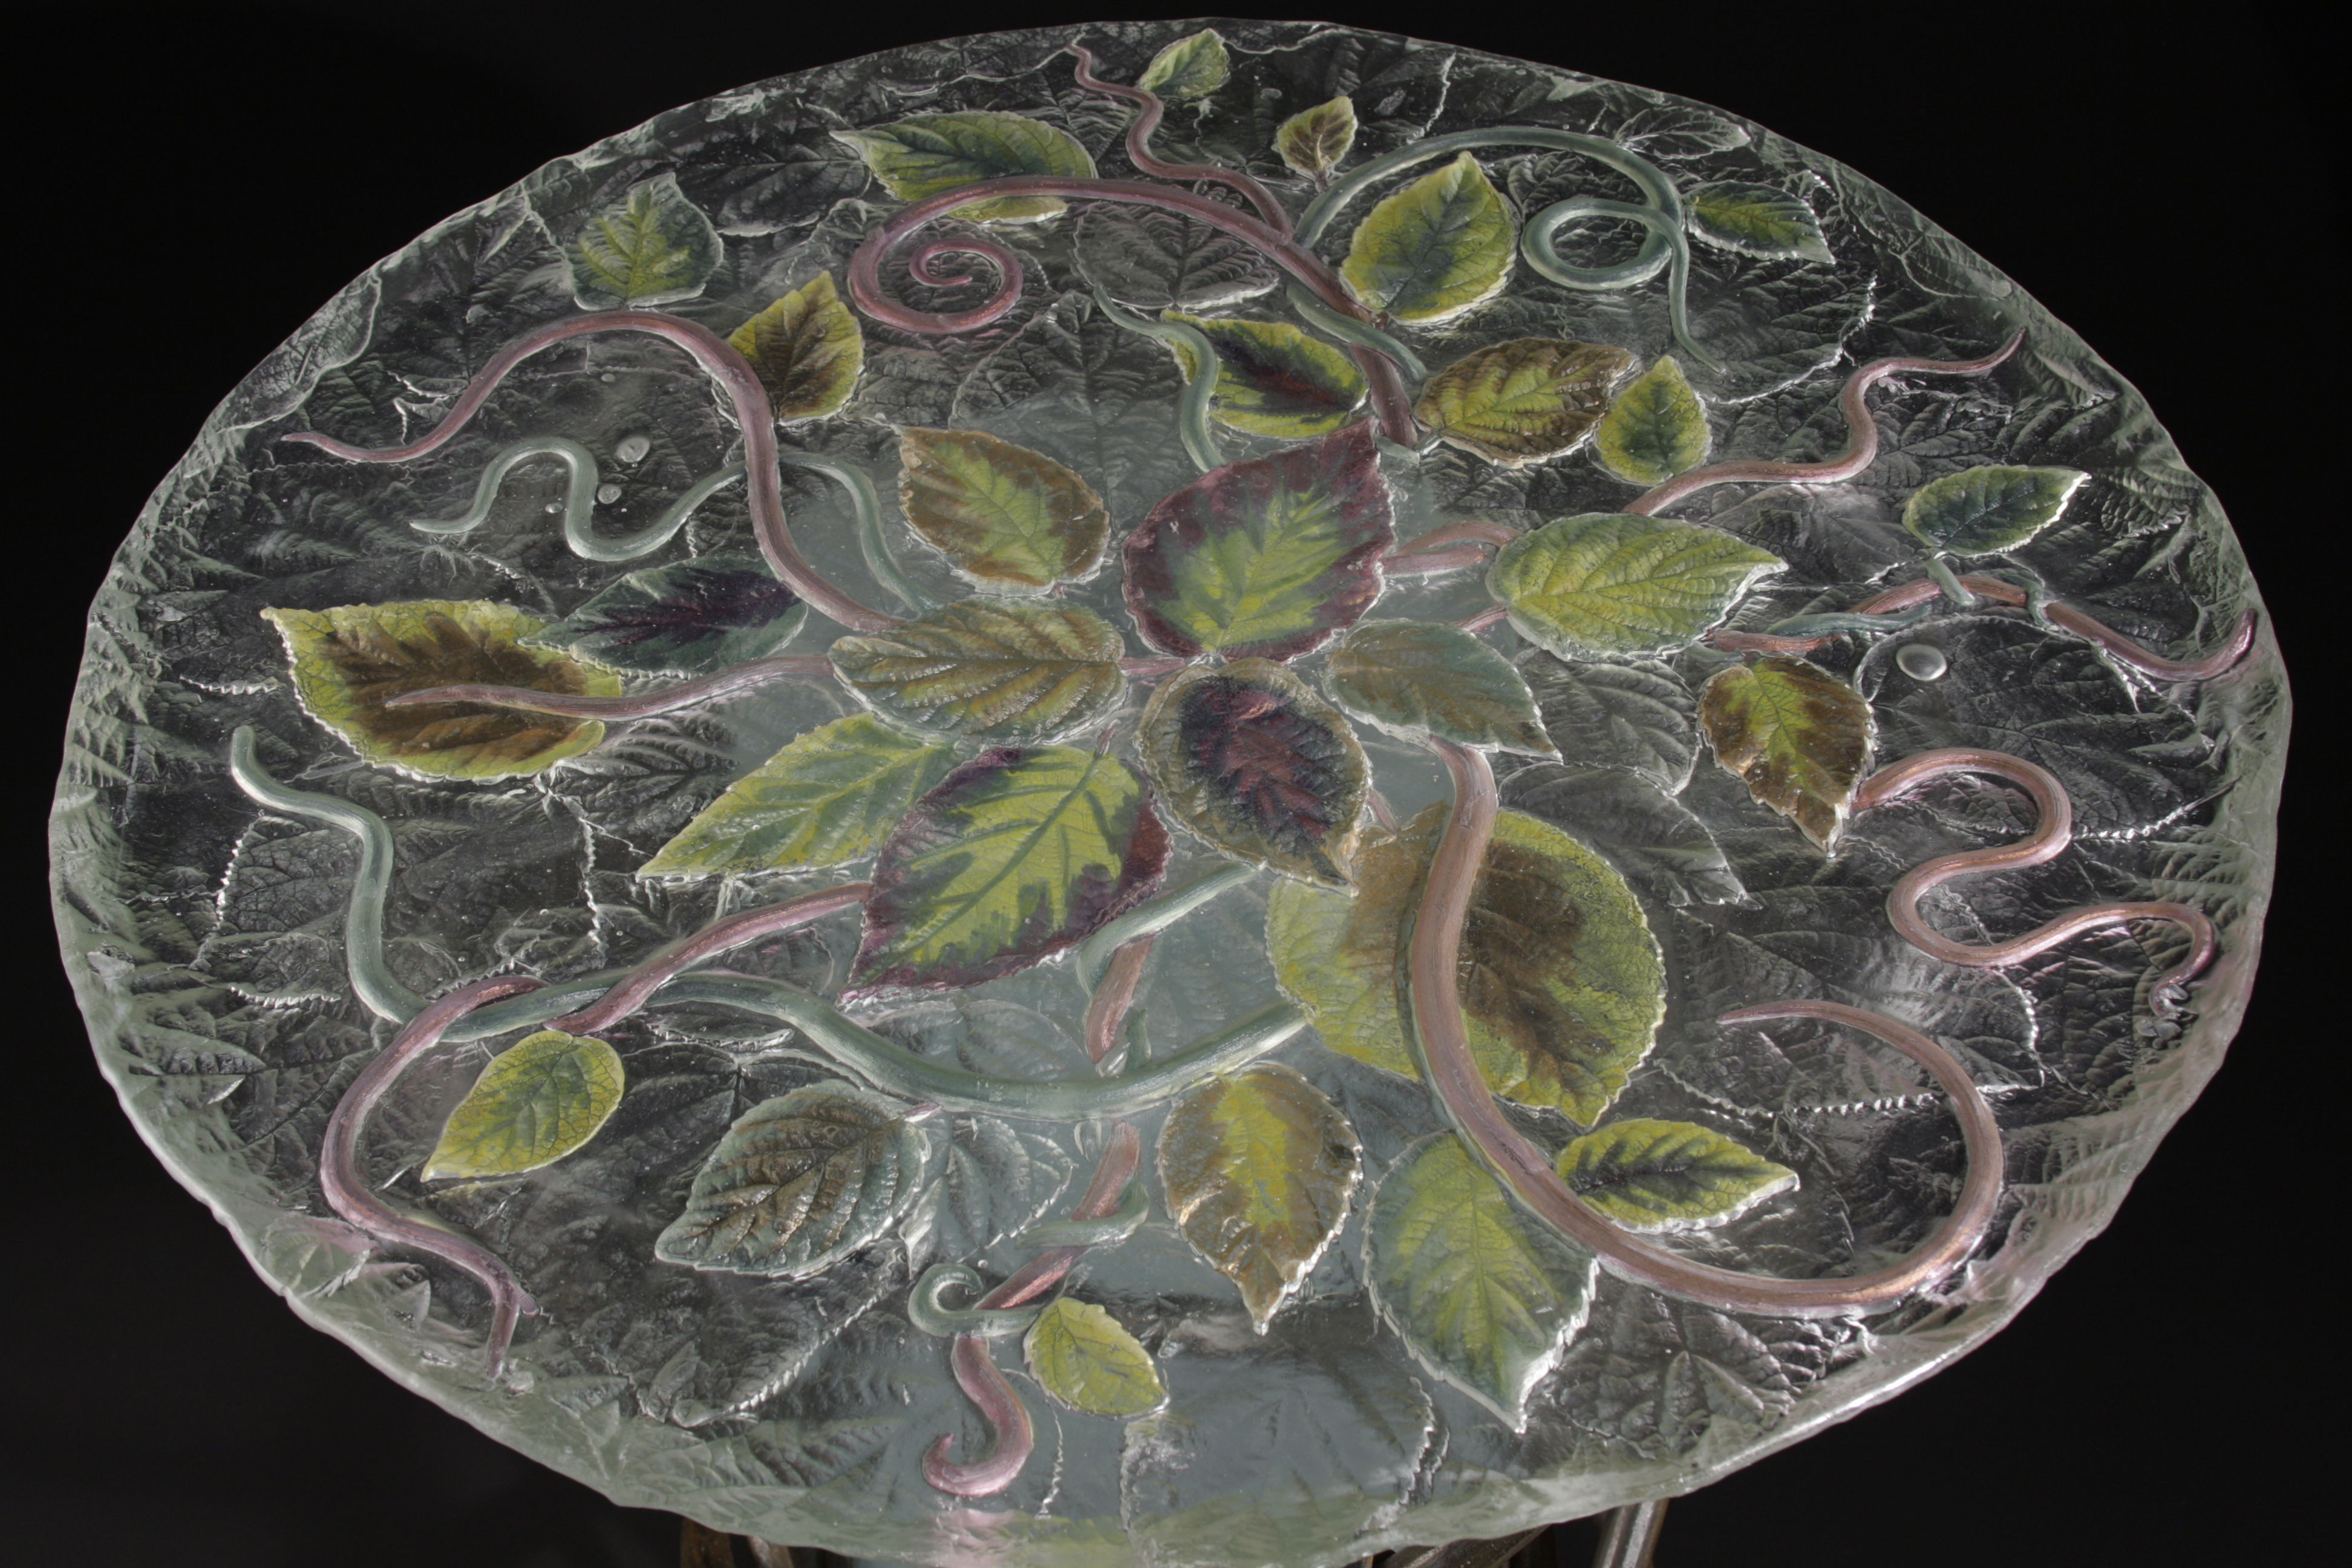 Top view of table with cast glass top with lustered leaves. Glass center surrounded by forged steel vines.